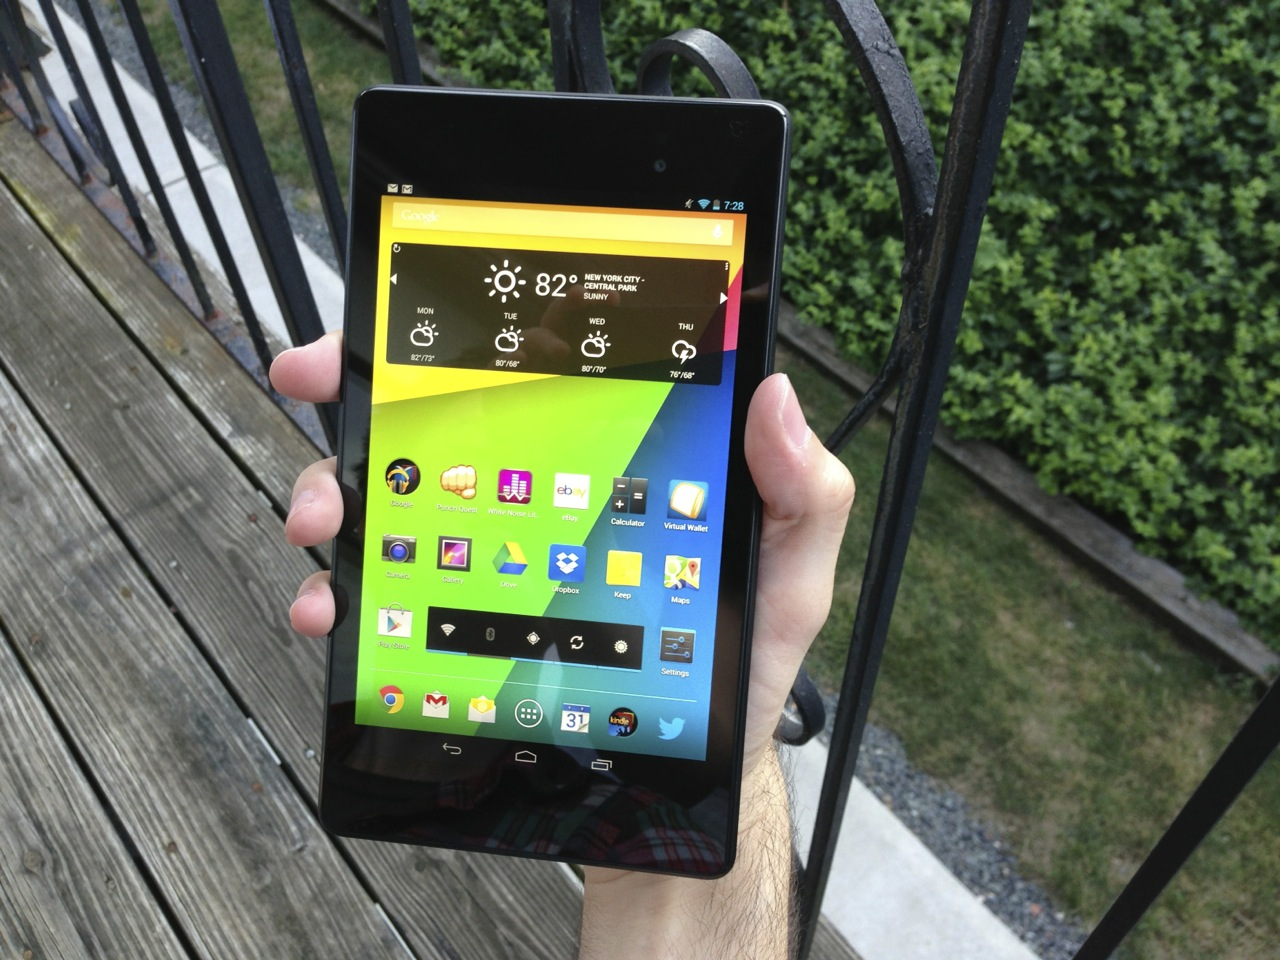 Even in my relatively large hands, I couldn't hold the old Nexus 7 like this without straining.